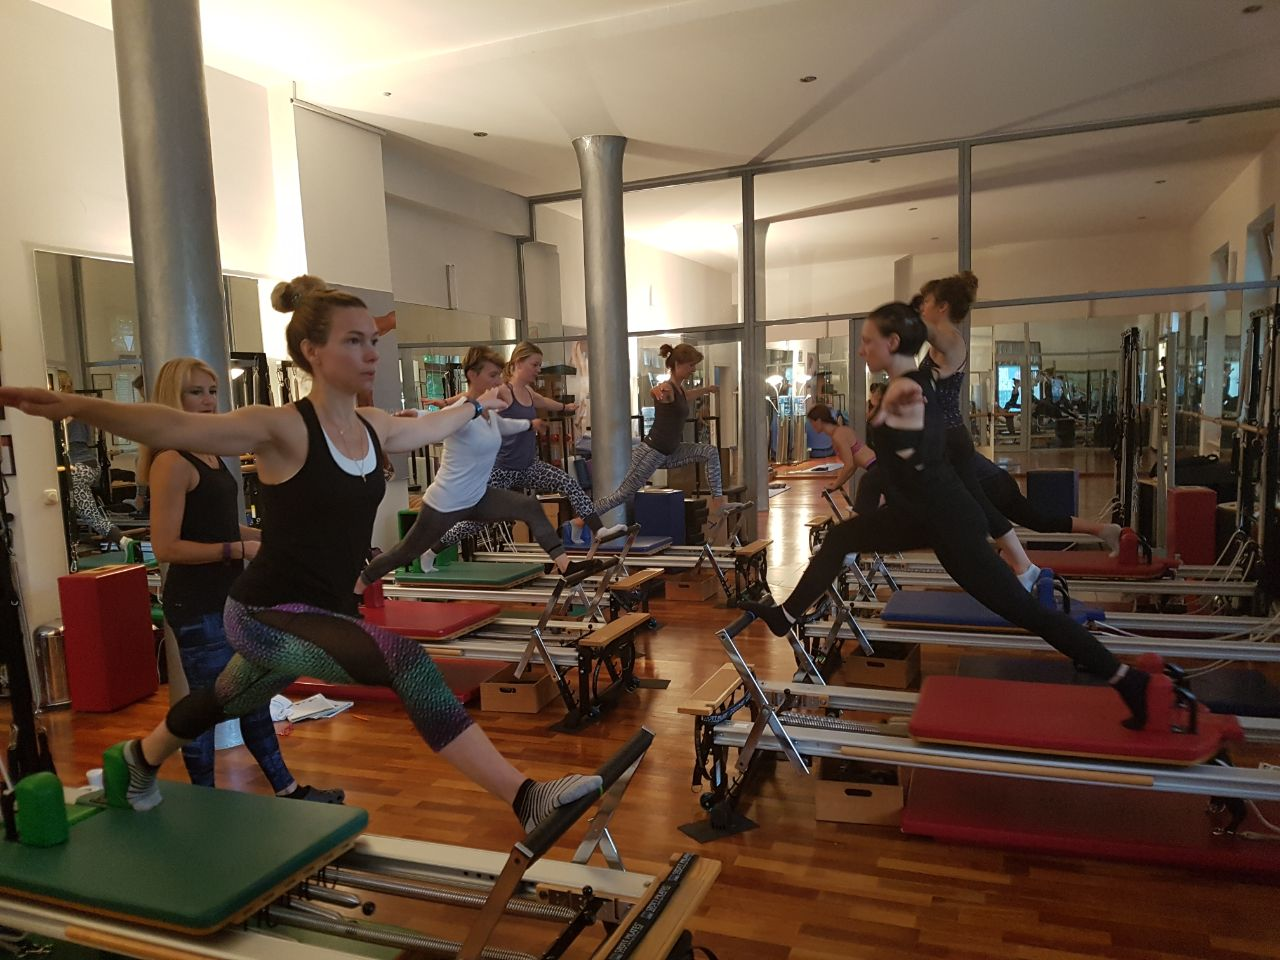 Introduction to Pilates Machines: the Reformer